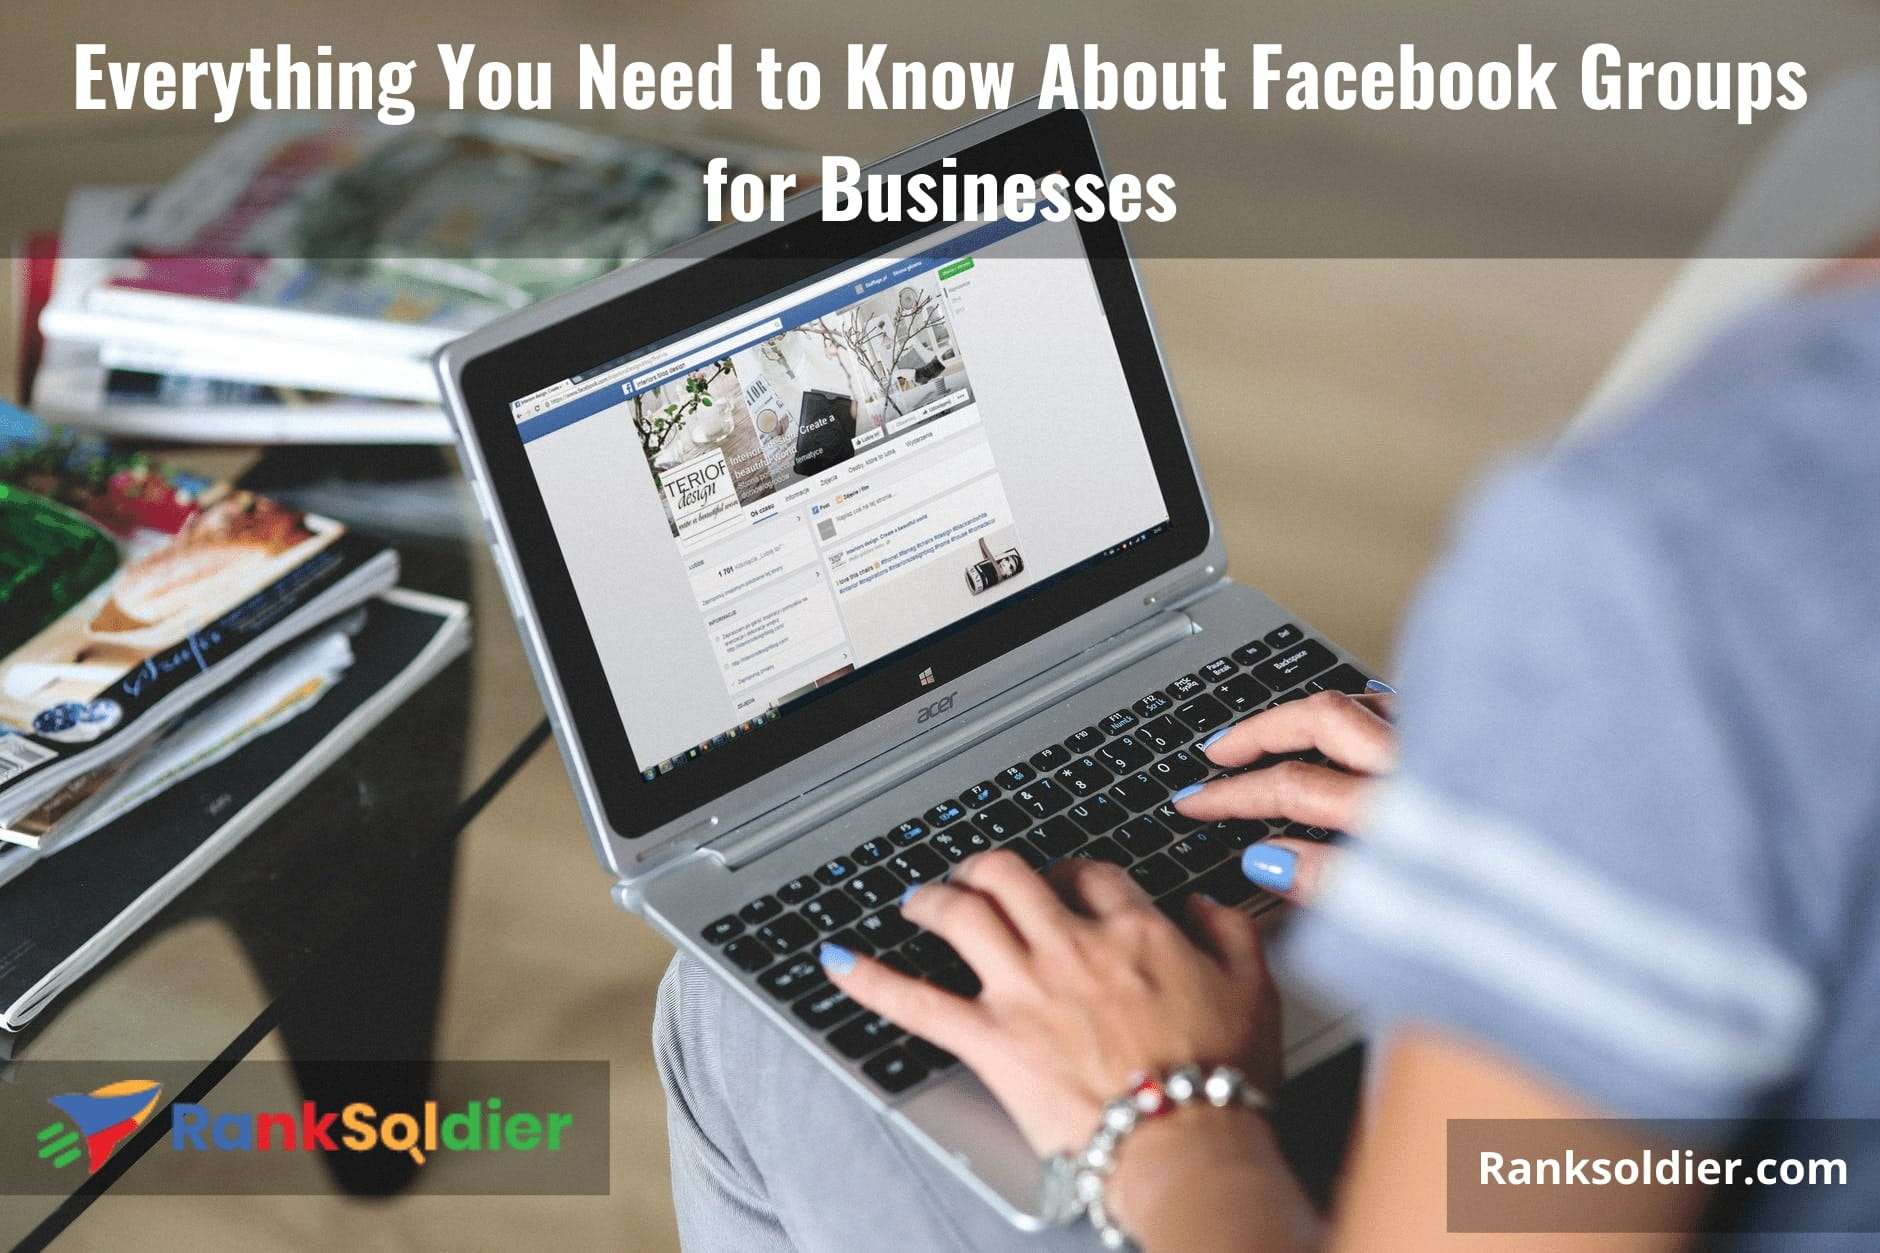 Everything You Need to Know About Facebook Groups for Businesses